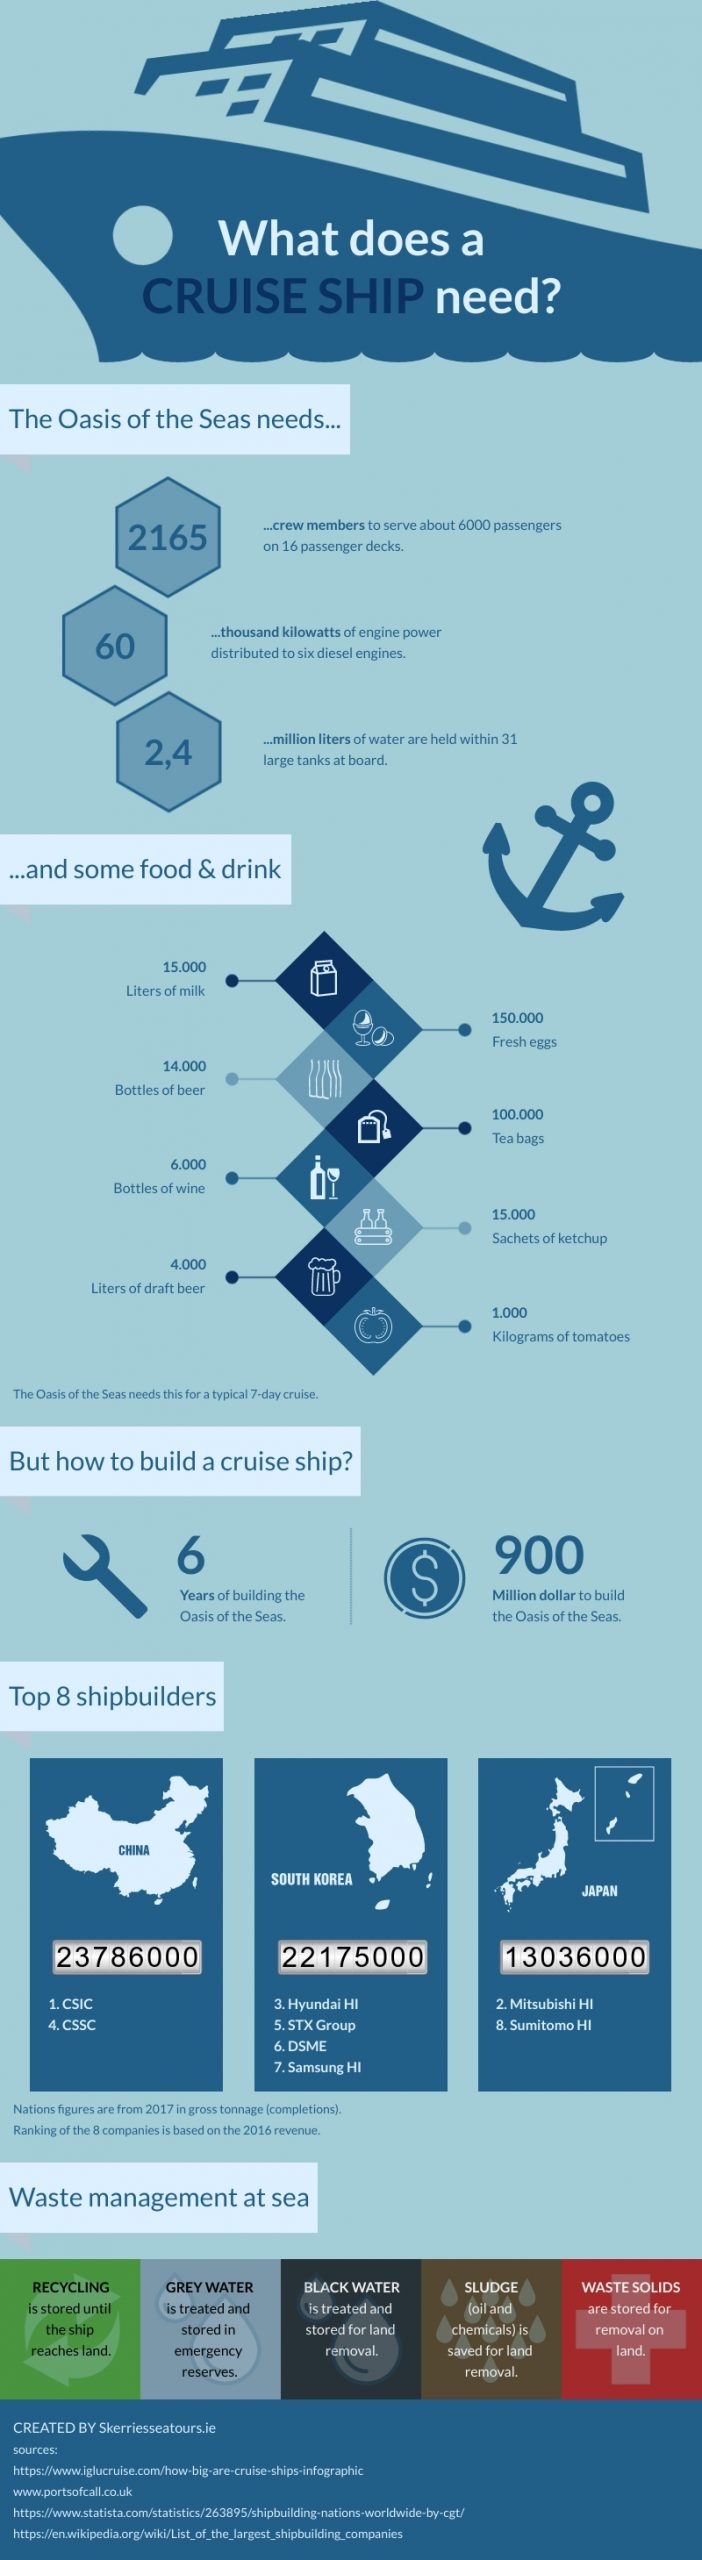 What does a cruise ship need infoghraphic